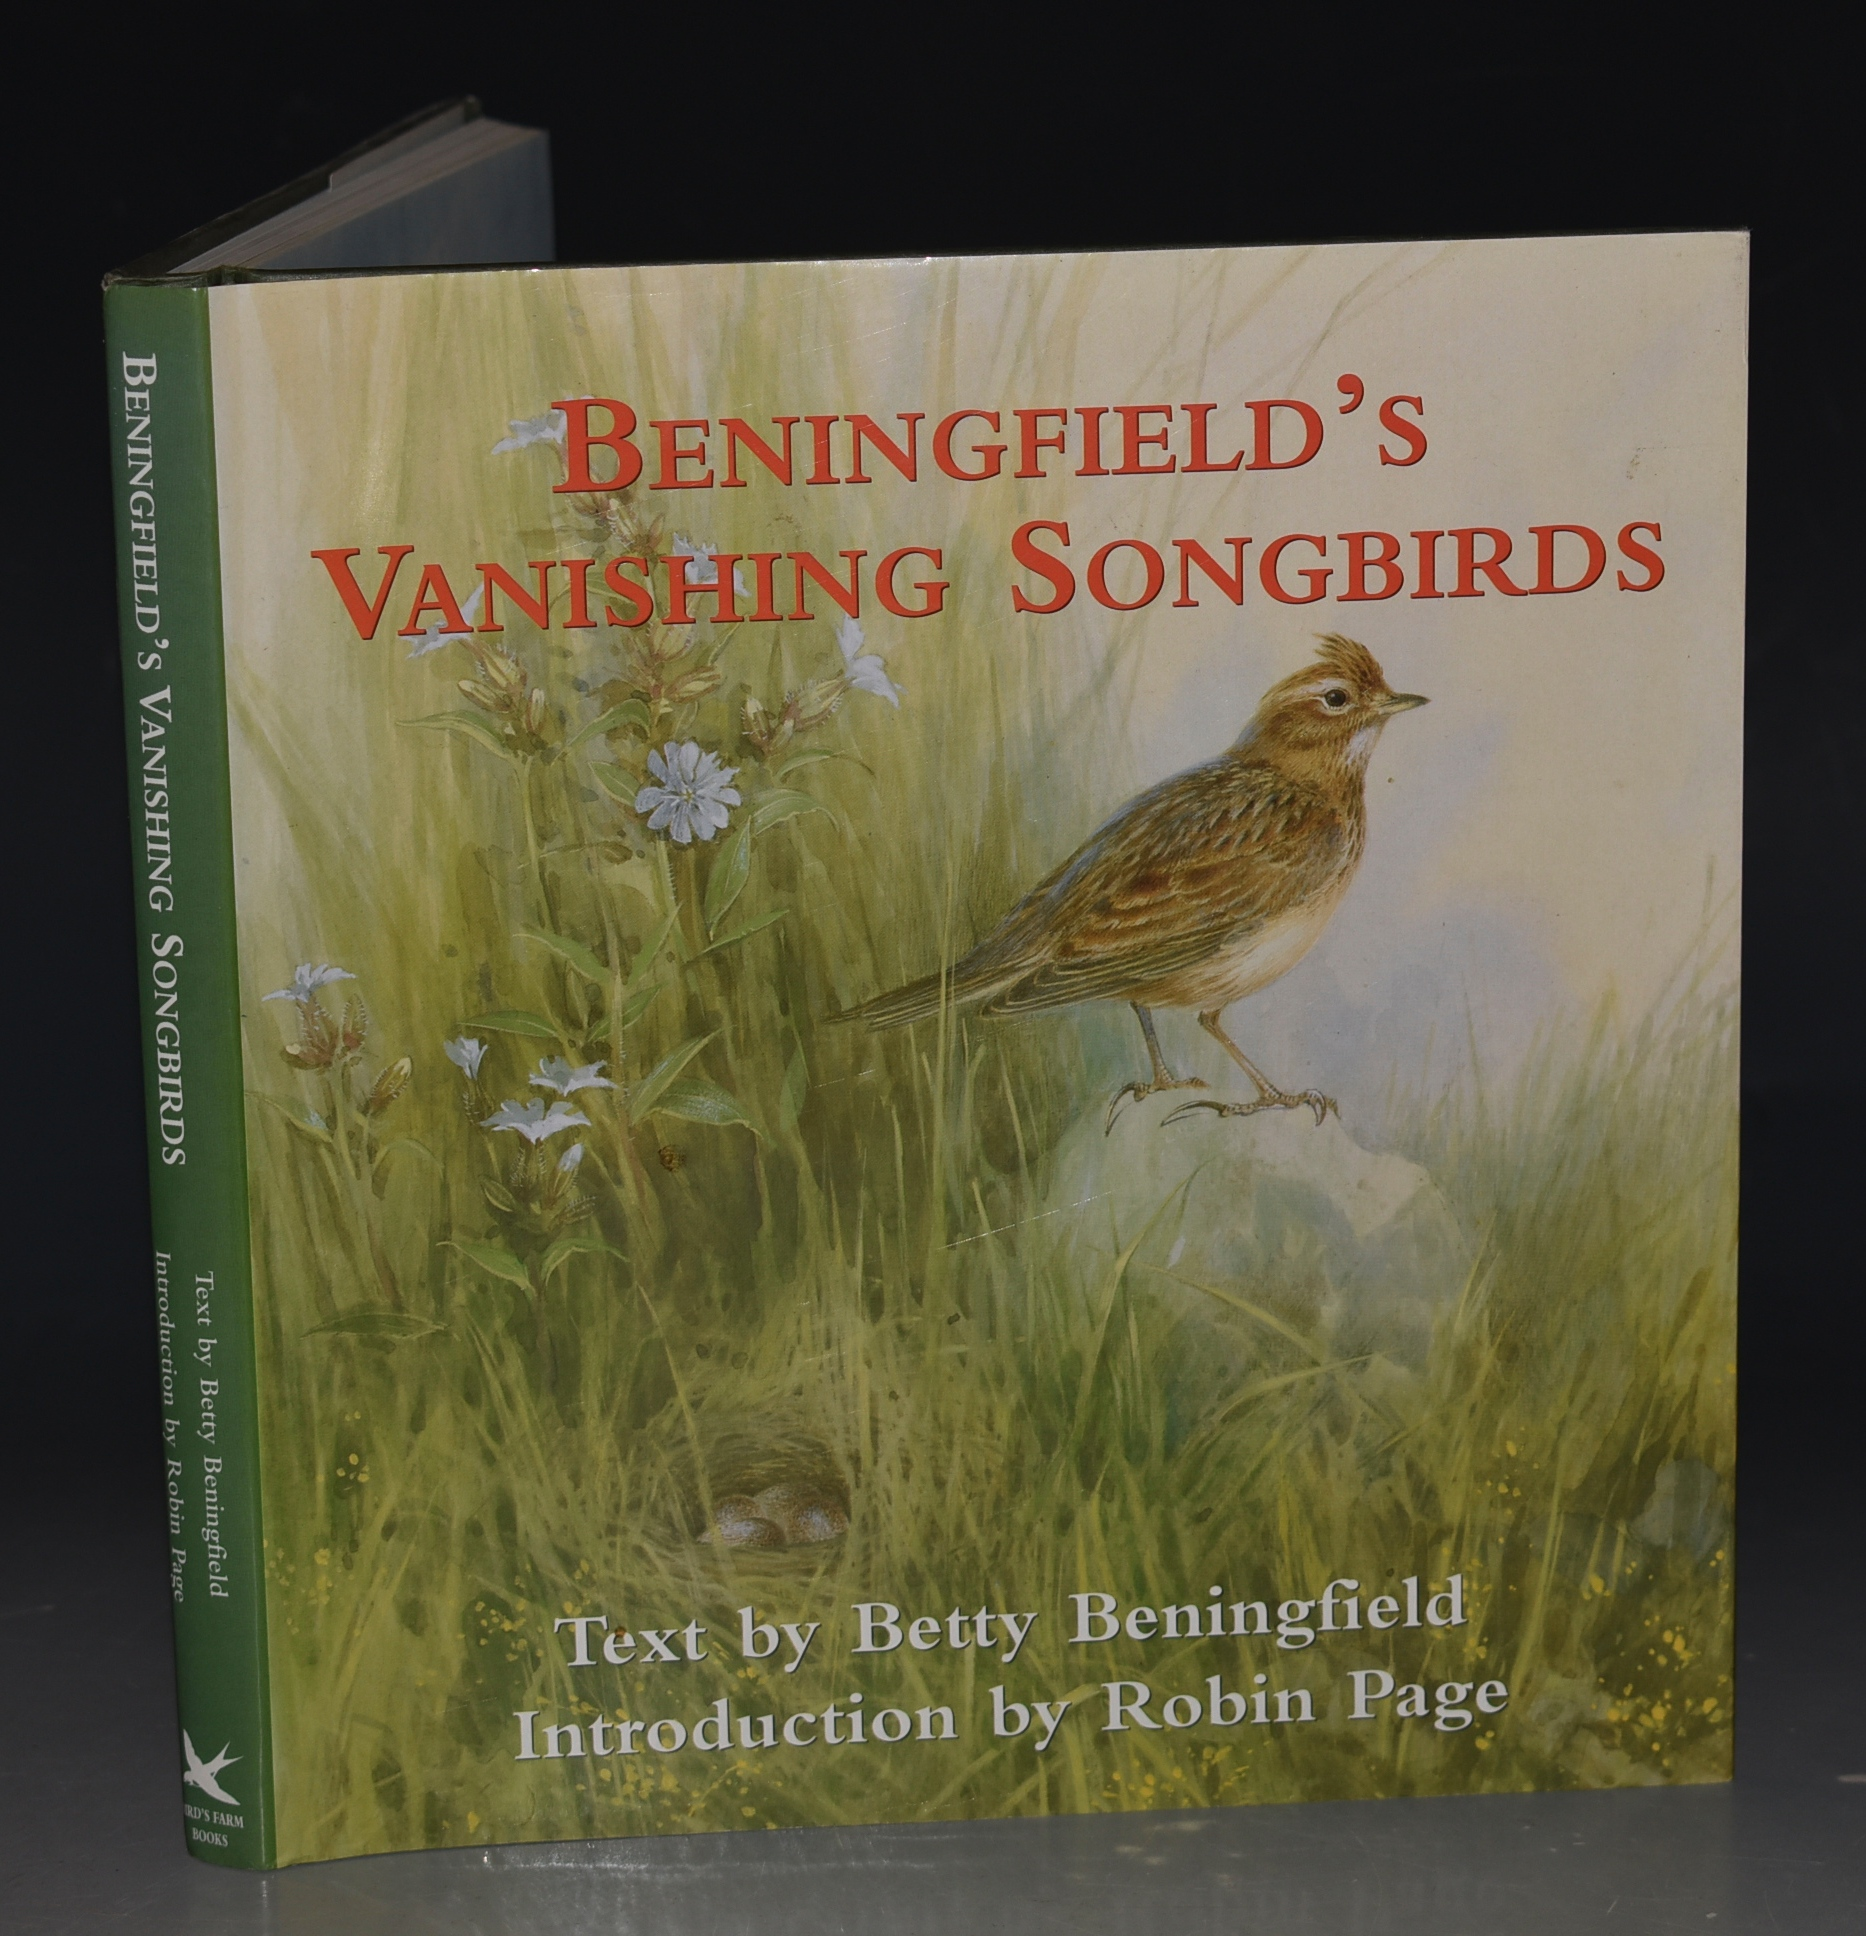 Image for Beningfield's Vanishing Songbirds. Text by Betty Beningfield. Introduction by Robin Page. Signed copy.